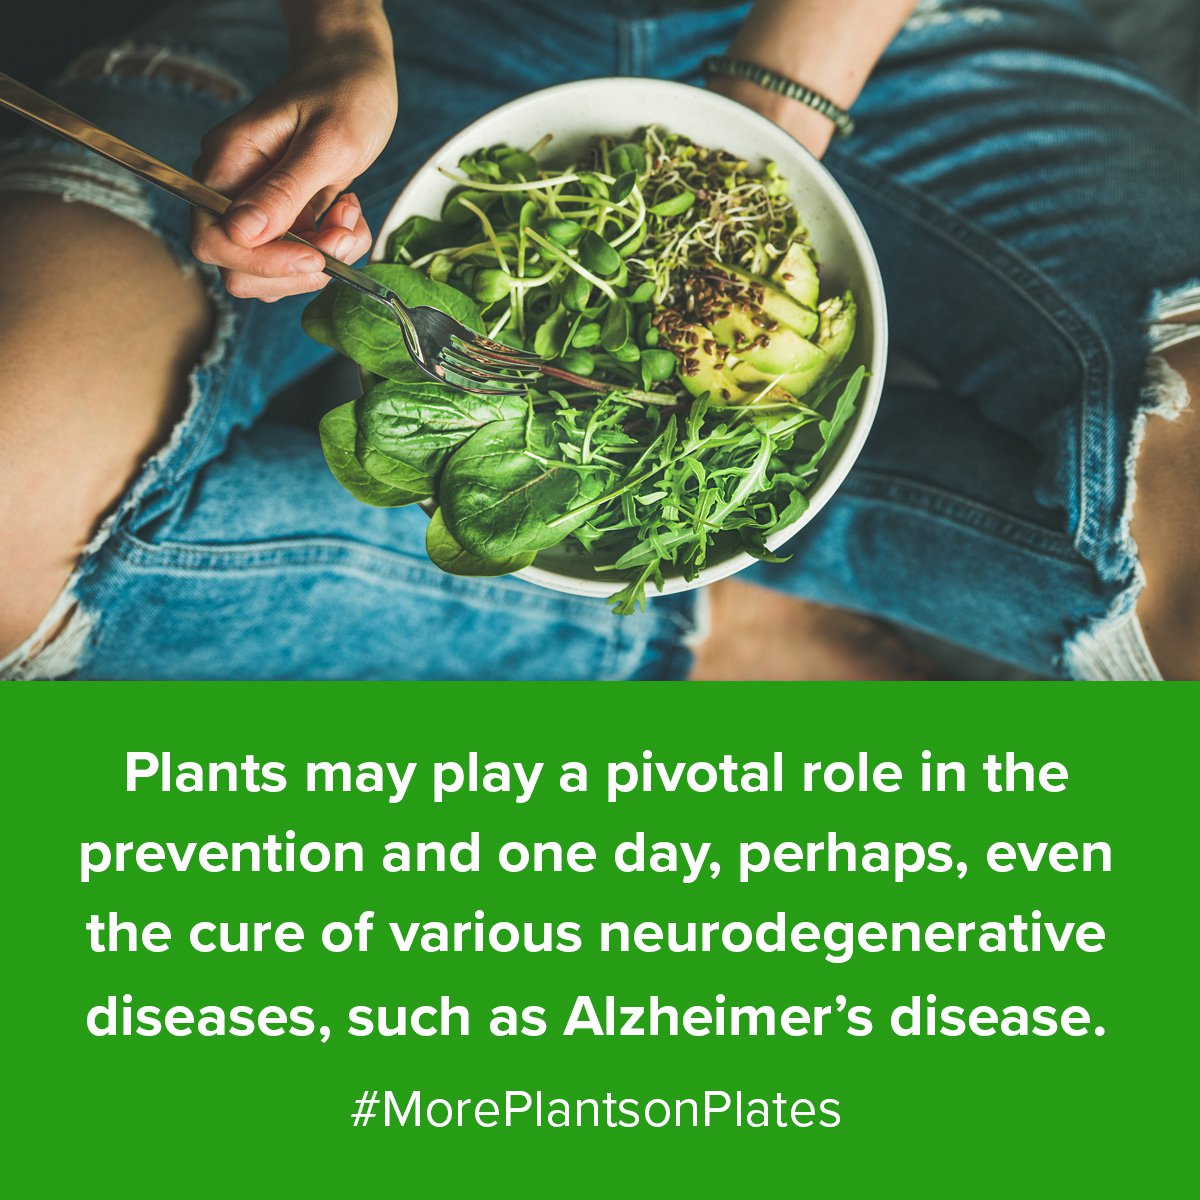 Plants may play a pivotal role in the prevention and one day, perhaps, even the cure of various neurodegenerative diseases, such as Alzheimer's disease. #MorePlantsonPlates